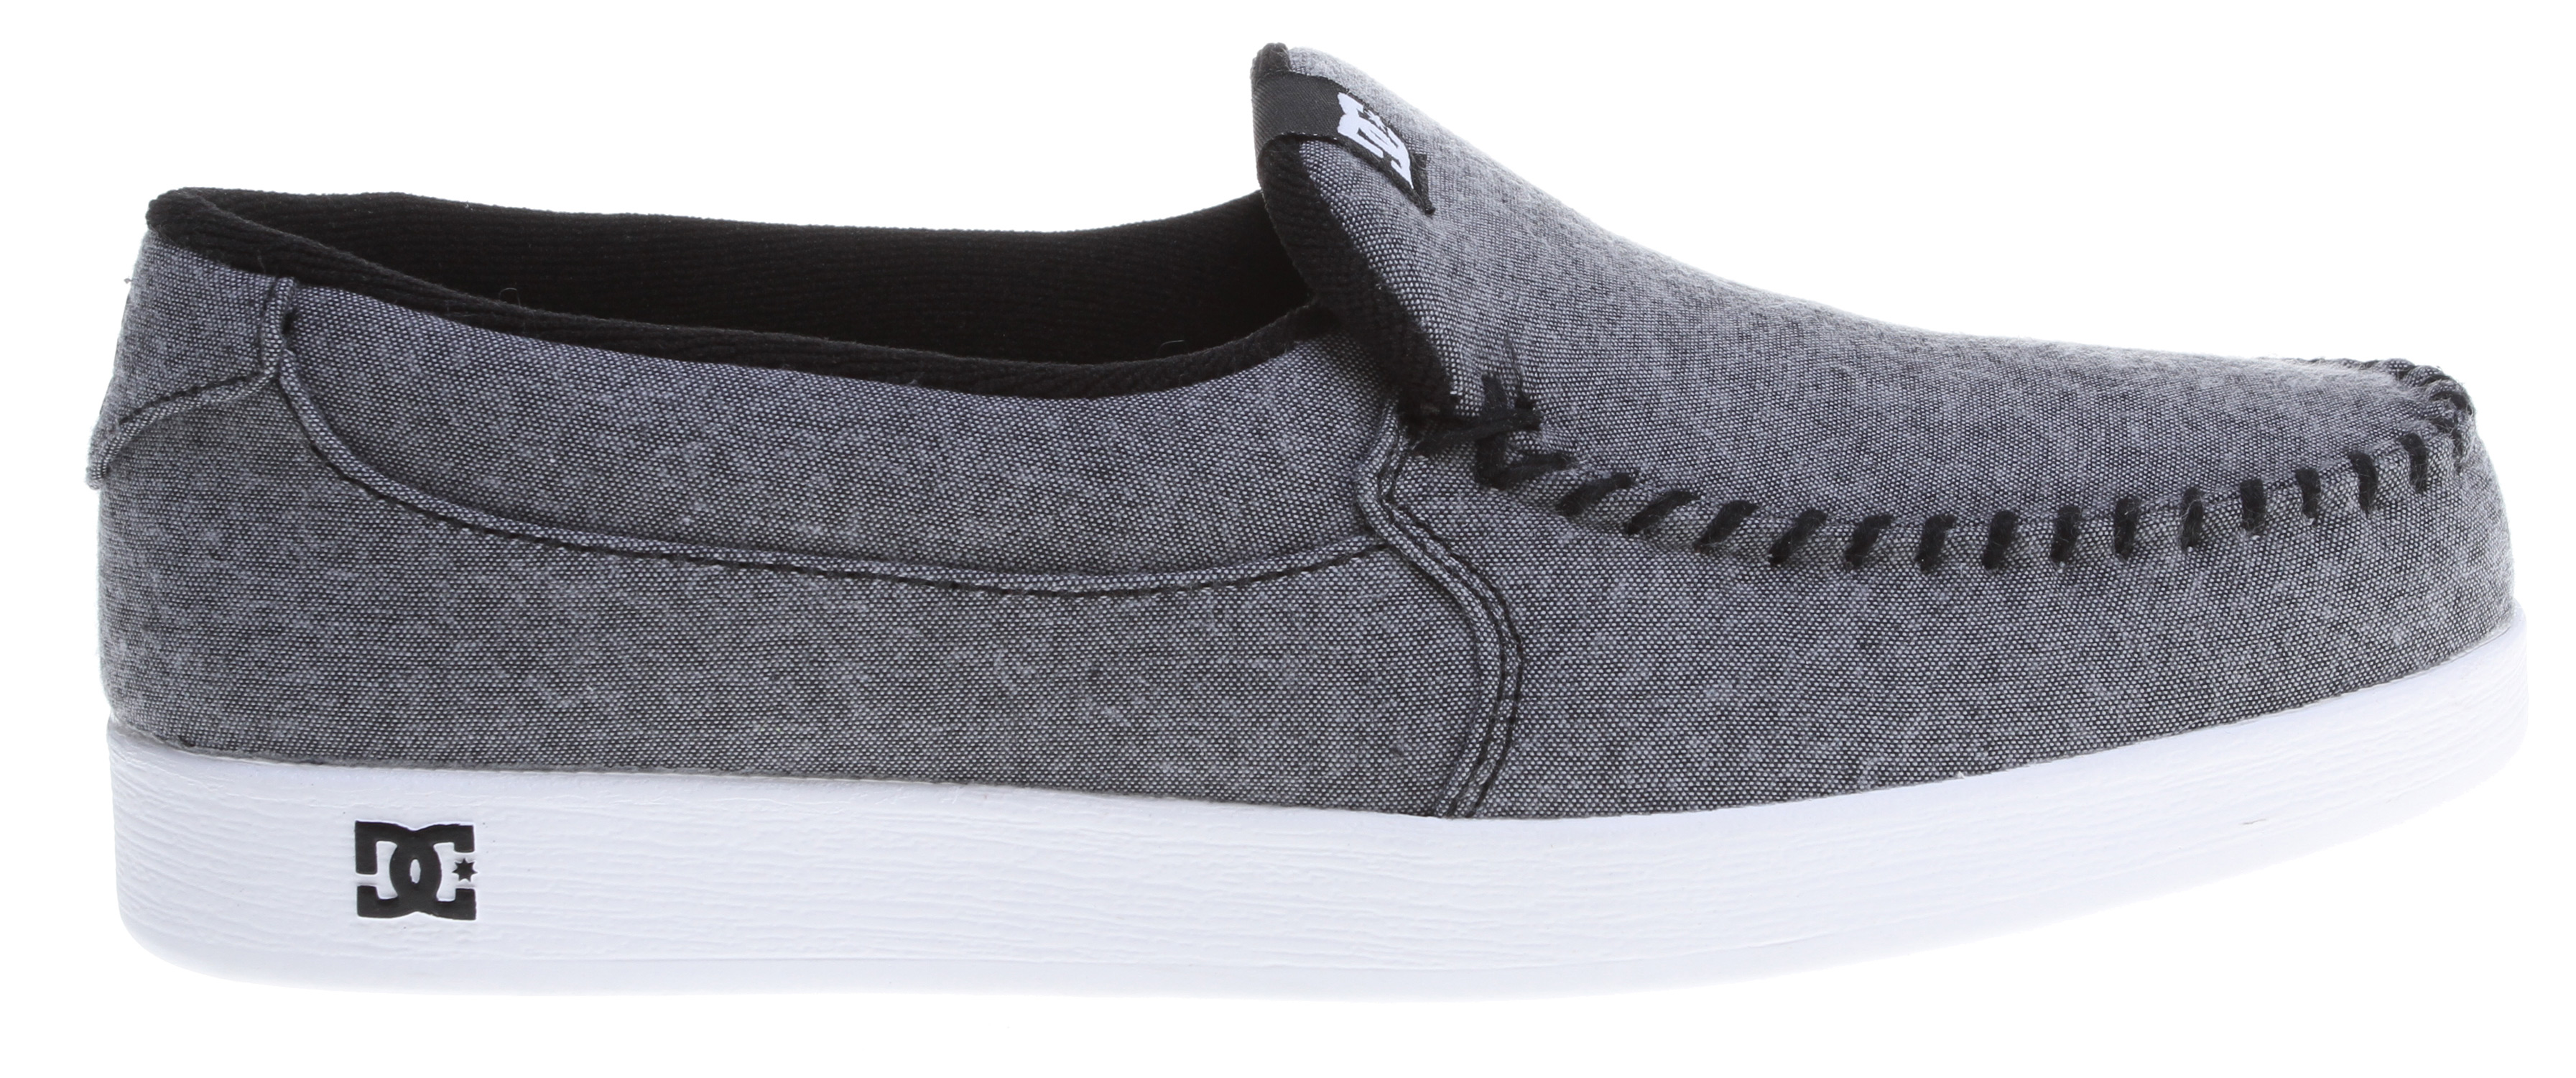 "Skateboard Key Features of the DC Villain Tx Shoes: Whip Stitch, Moc Toe Slip-On Stylized Plaid Textile Upper Soft Mesh Lining DC's Trademarked ""Pill Pattern"" Tread. - $34.95"